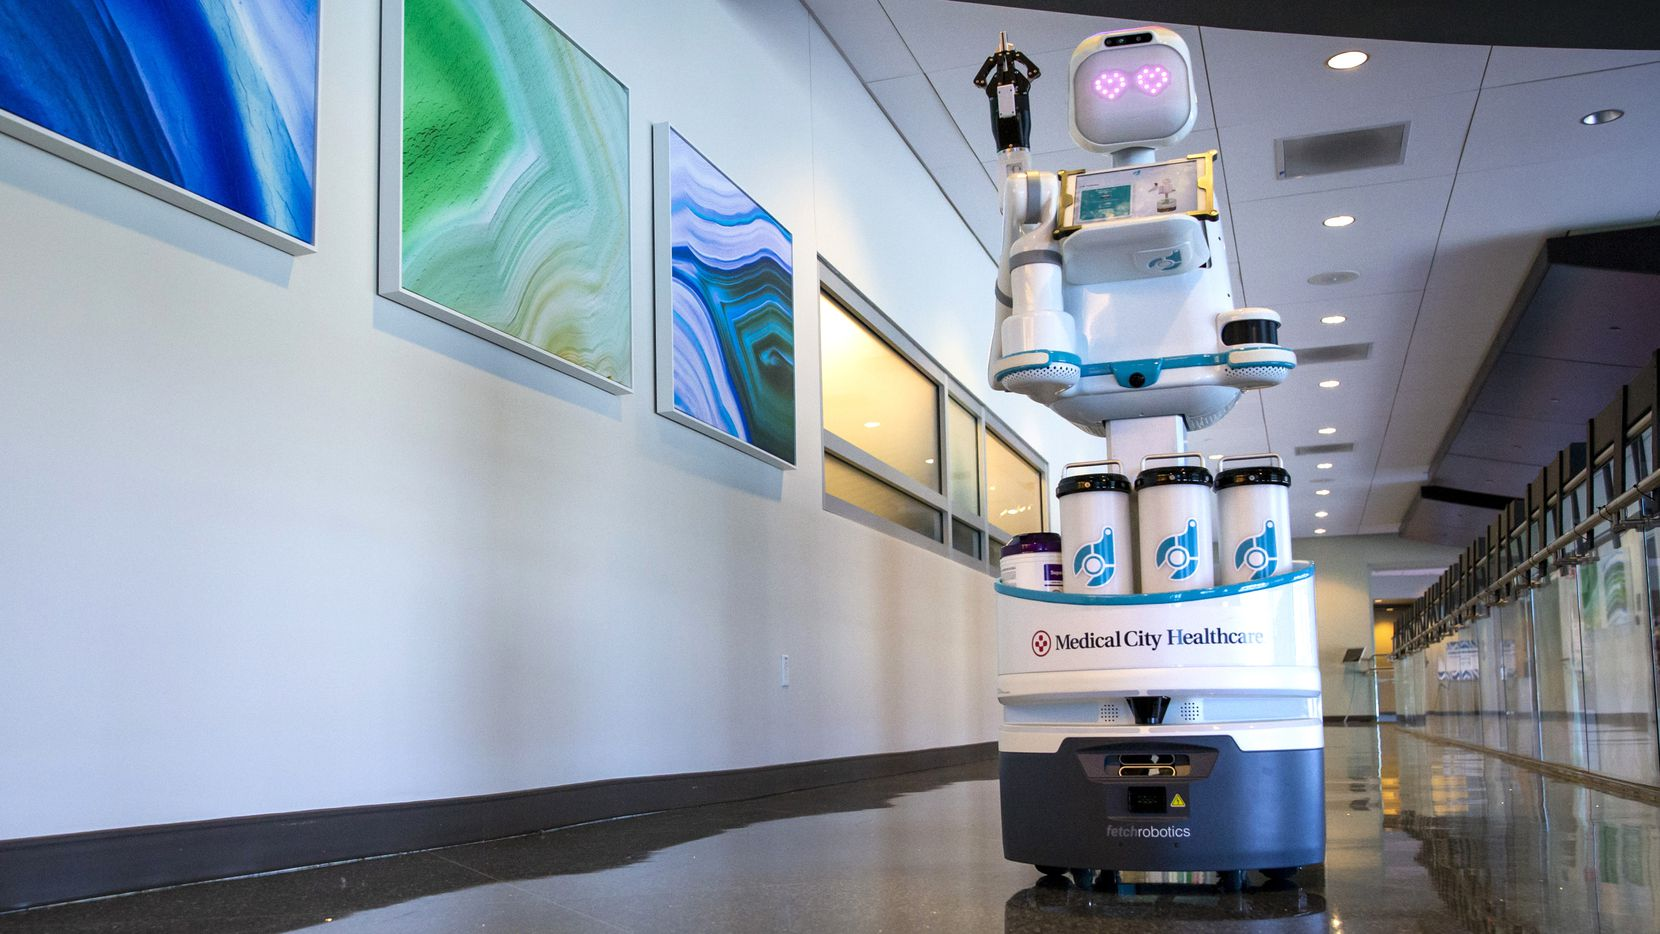 Moxi, a care assistant robot, demonstrates a specimen transfer at the Medical City Heart and Spine Hospital in Dallas on Friday, Feb. 14, 2020. The hospital is the first to use Austin-based Diligent Robotics robots as medical assistants.